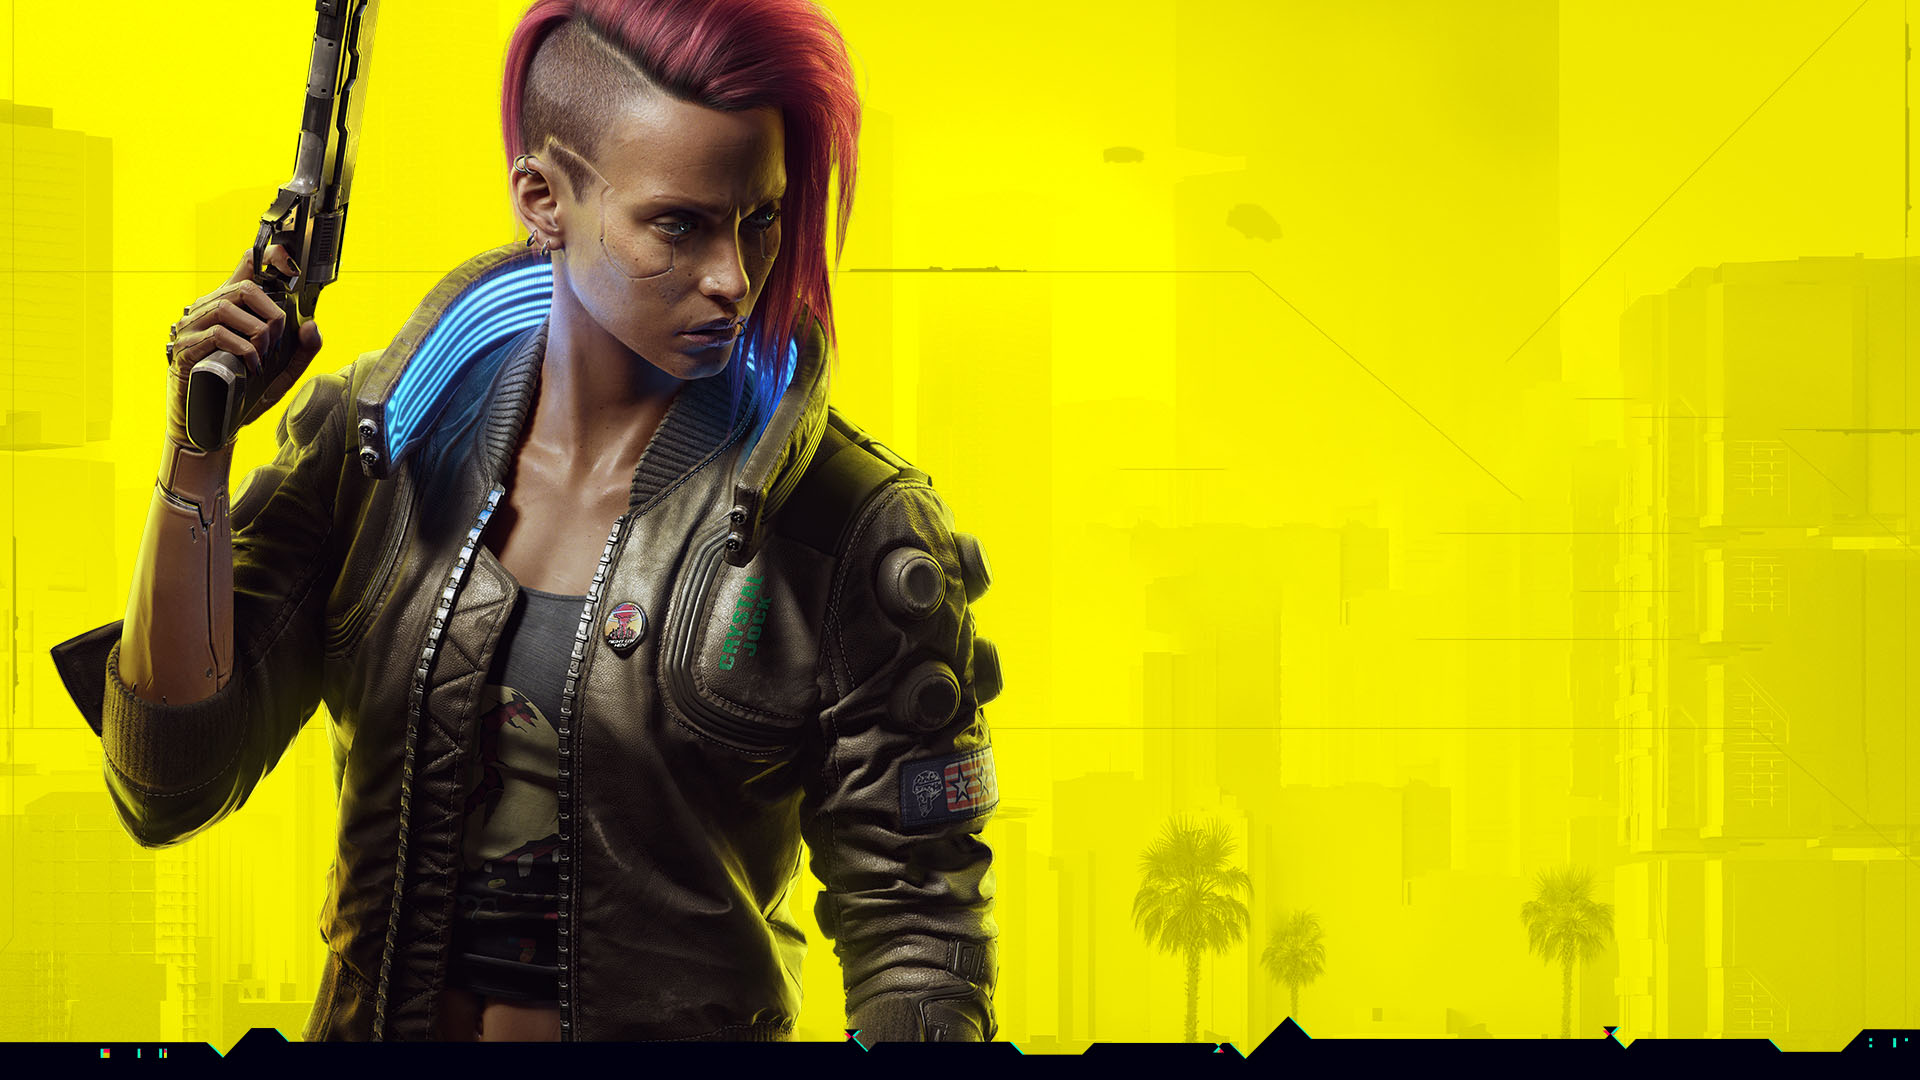 Cyberpunk 2077: CD Projekt responds to investors on the game's release conditions